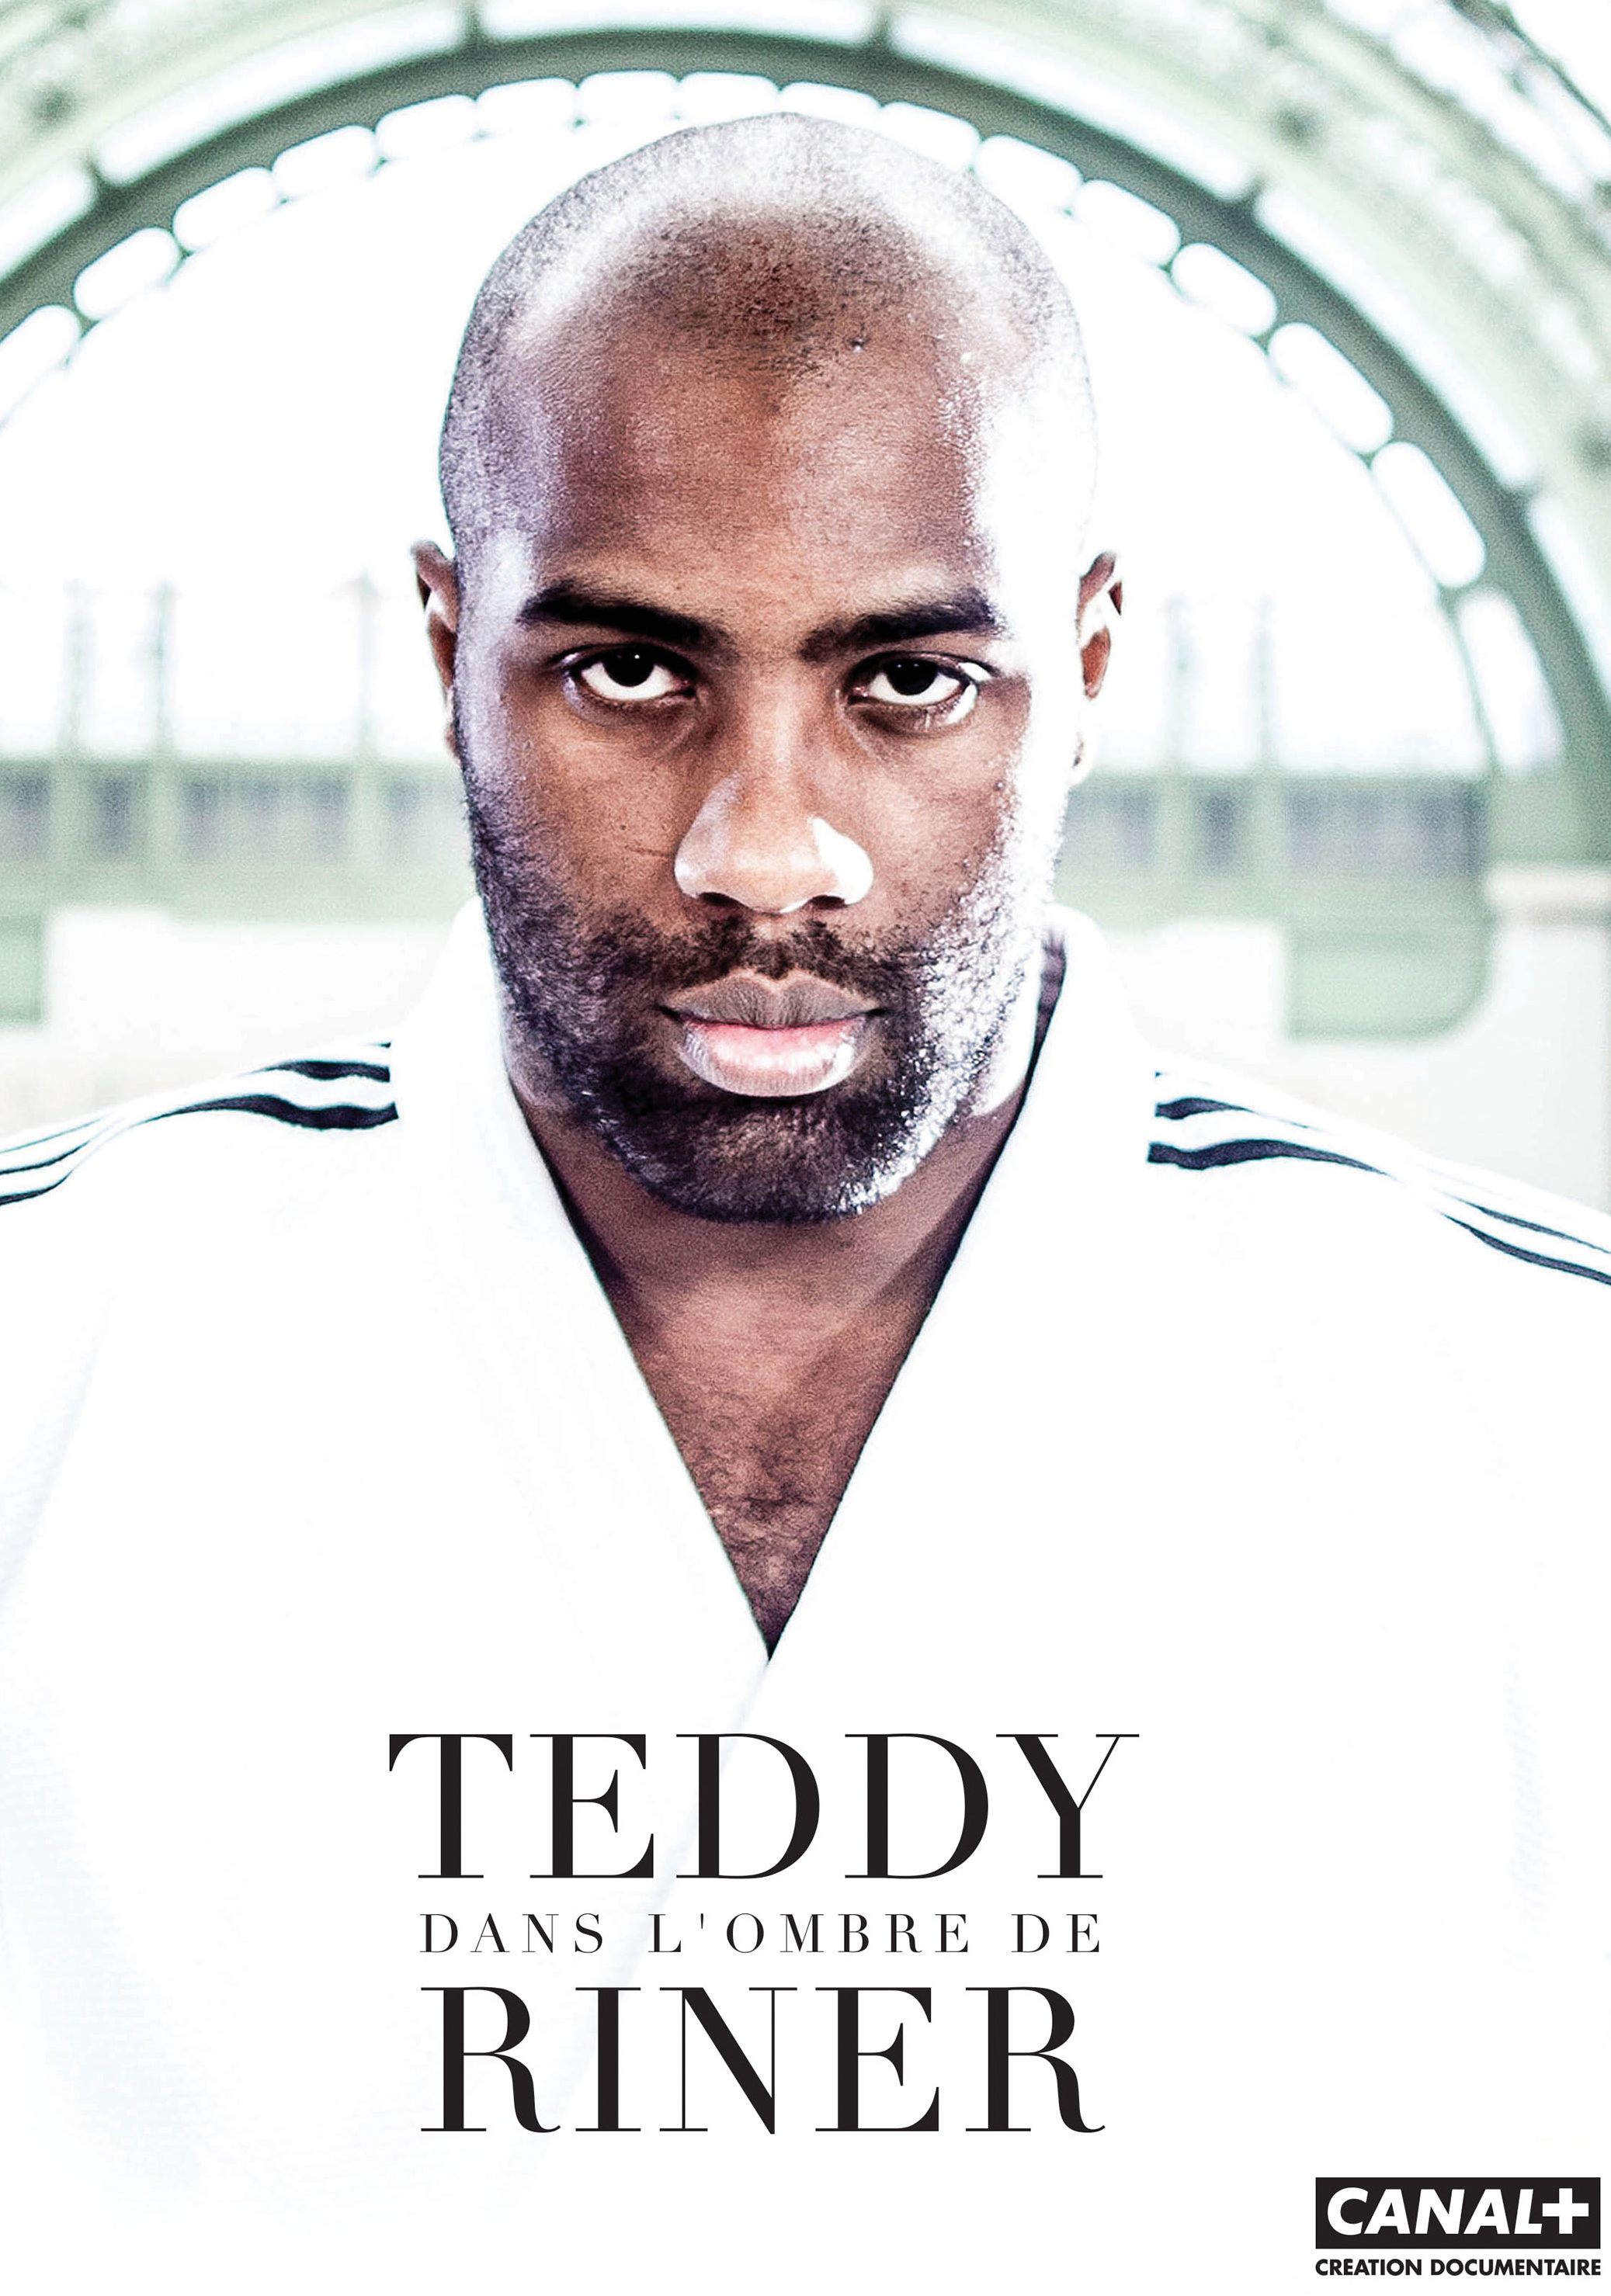 teddy riner sur canal ippon au grand palais rmn grand palais. Black Bedroom Furniture Sets. Home Design Ideas